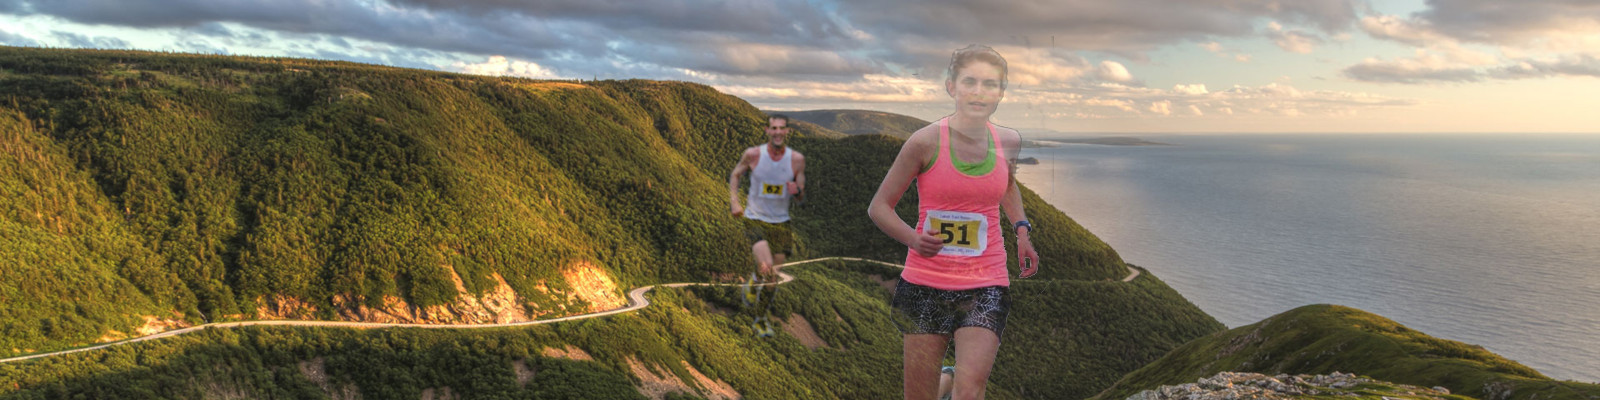 Cabot Trail Relay Race – Cape Breton, Nova Scotia post thumbnail image